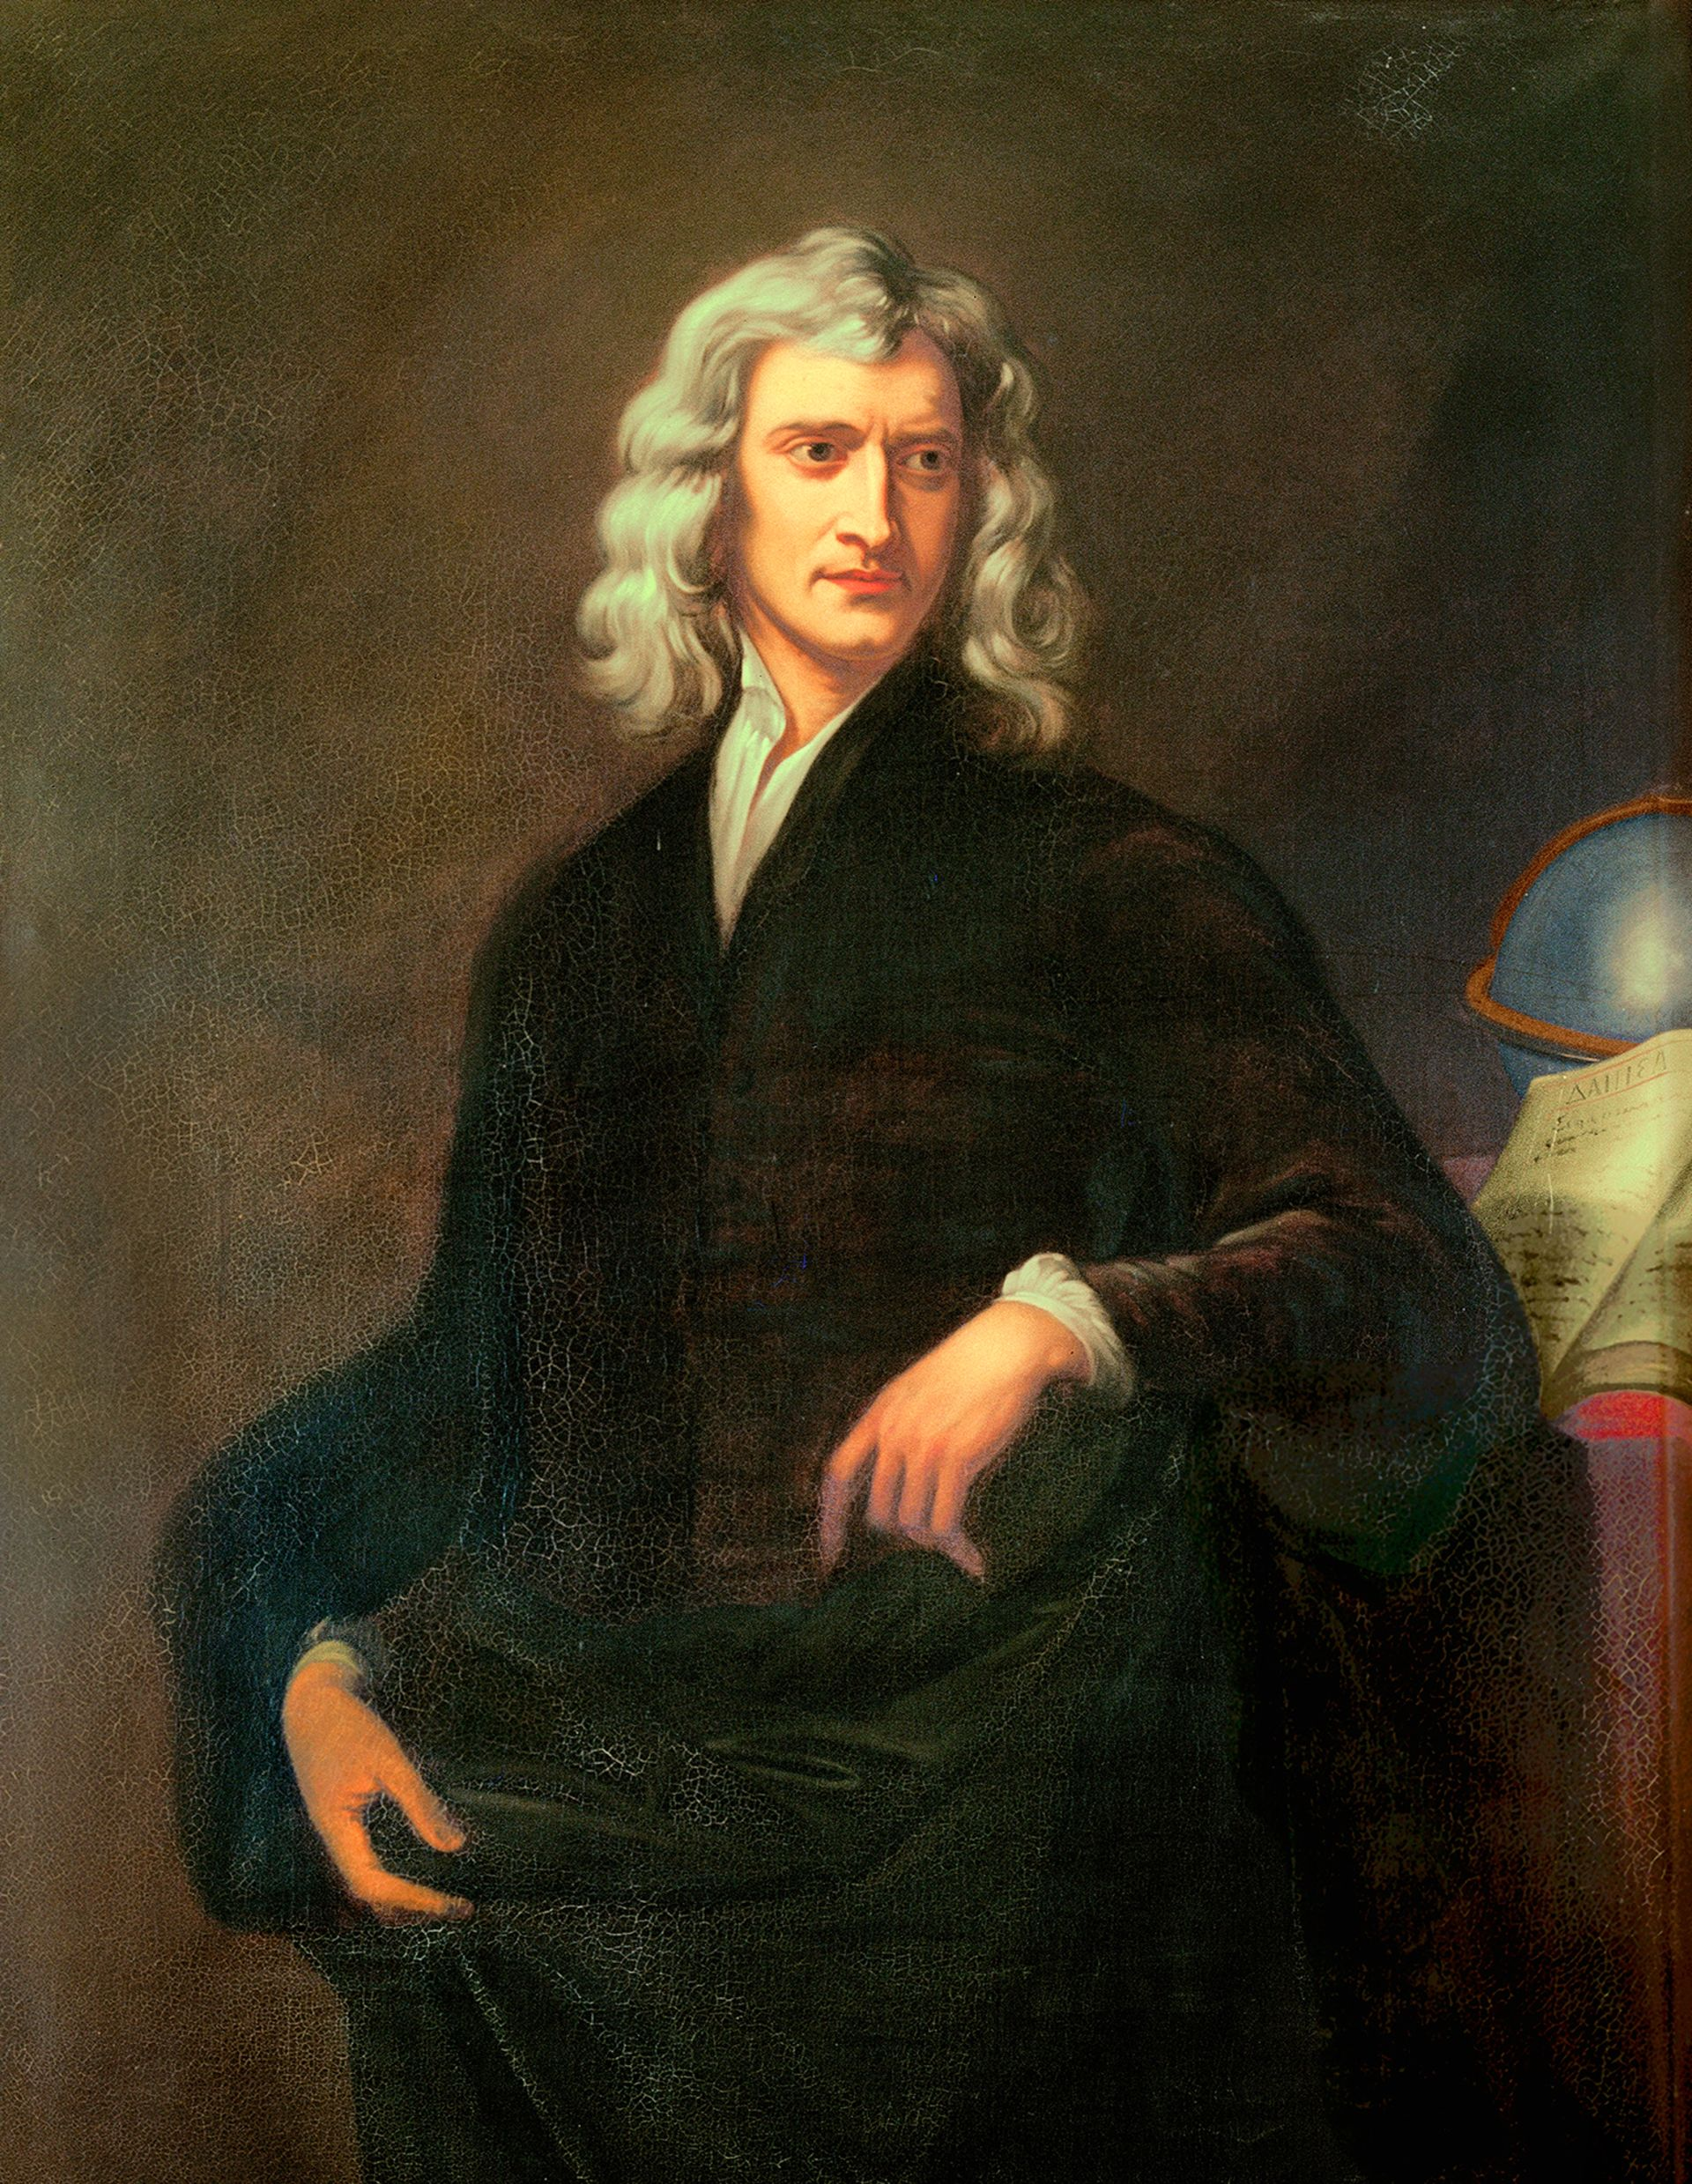 Newton's discoveries revolutionised the understanding of mechanics